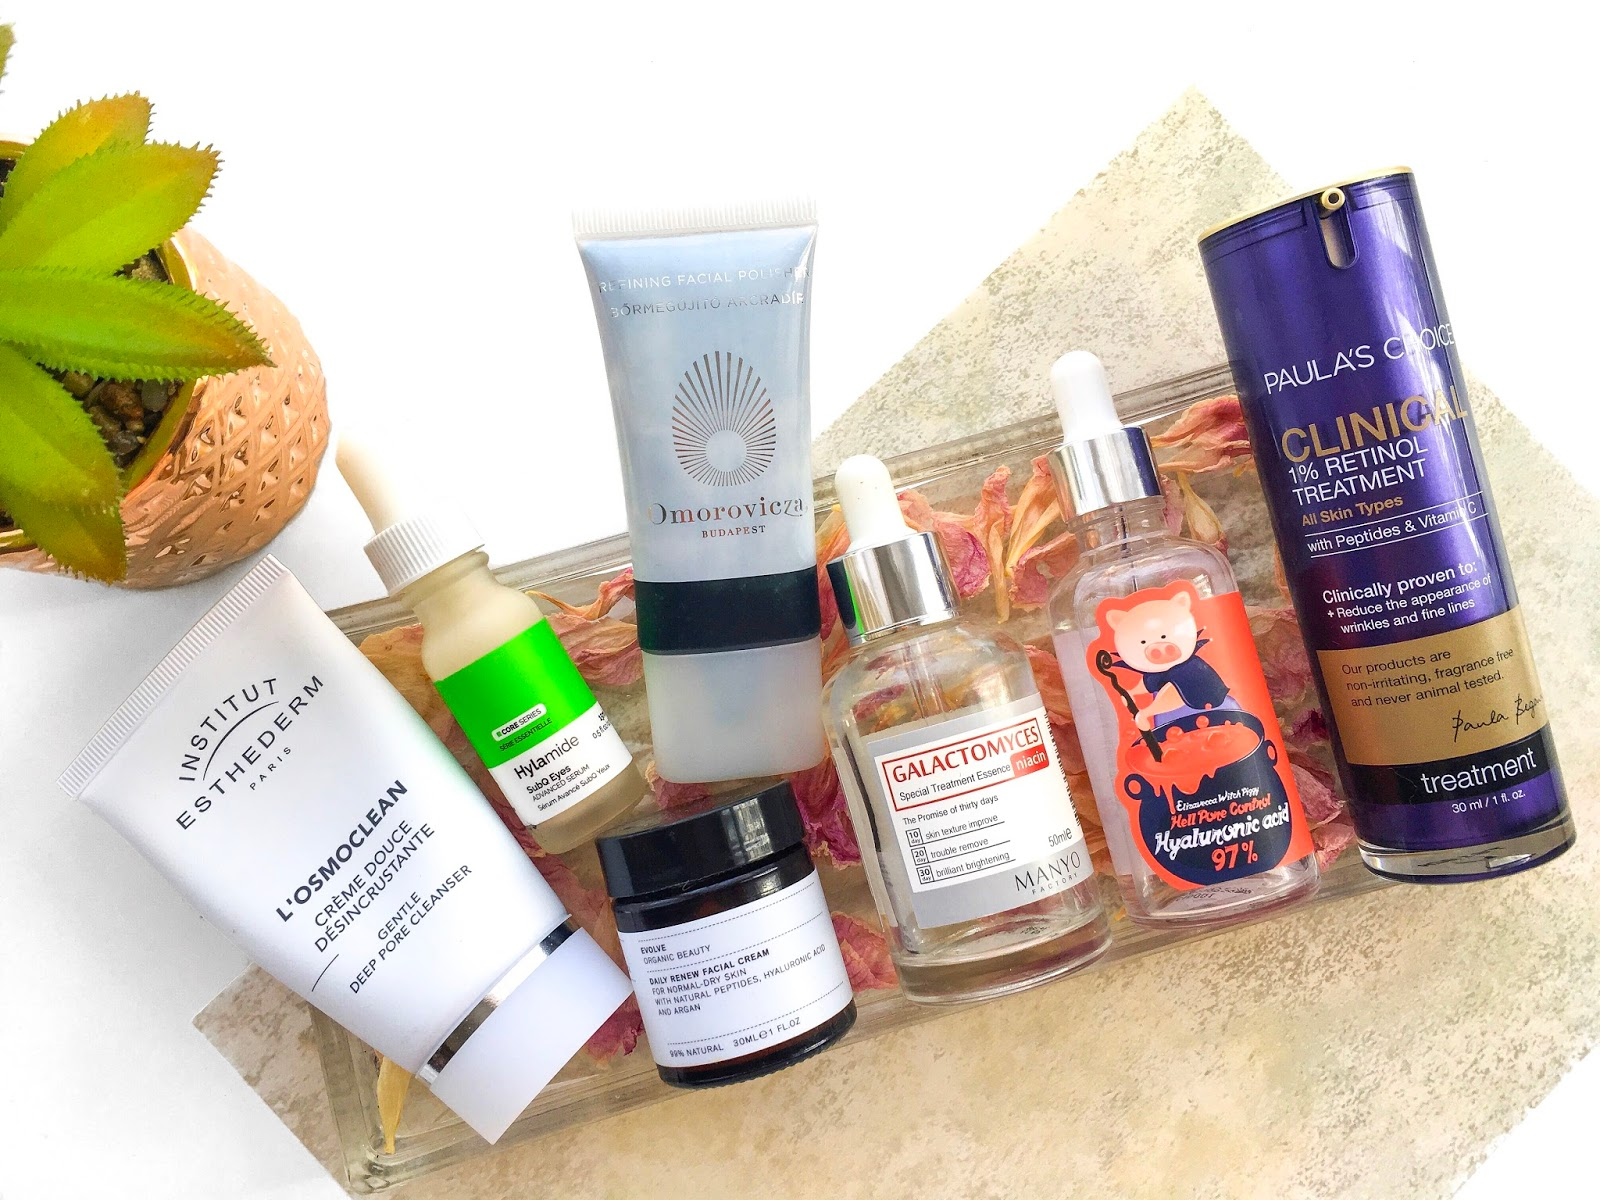 current skincare products review, institut esthederm losmoclean review, hylamide subq eyes review, elizavecca hyaluronic acid review, evolve beauty moisturiser review, manyo factory galactomyces essence review, skincare routine oily combination skin